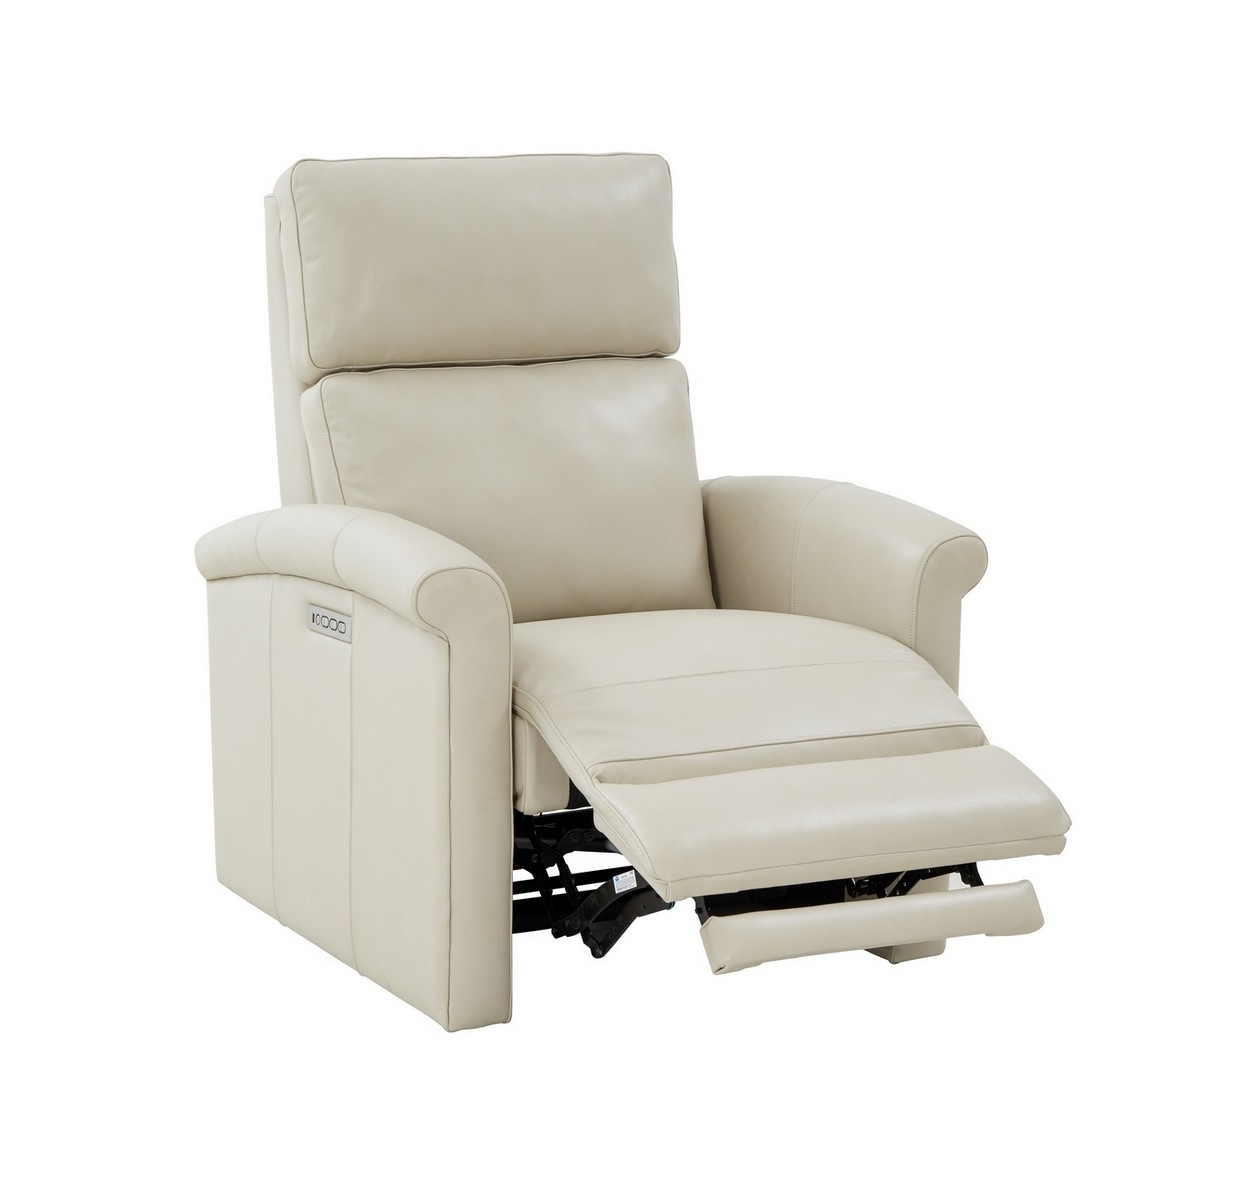 Barcalounger Jaxon Zero Gravity Power Recliner Chair with Power Head Rest and Lumbar - Barone Parchment/All Leather